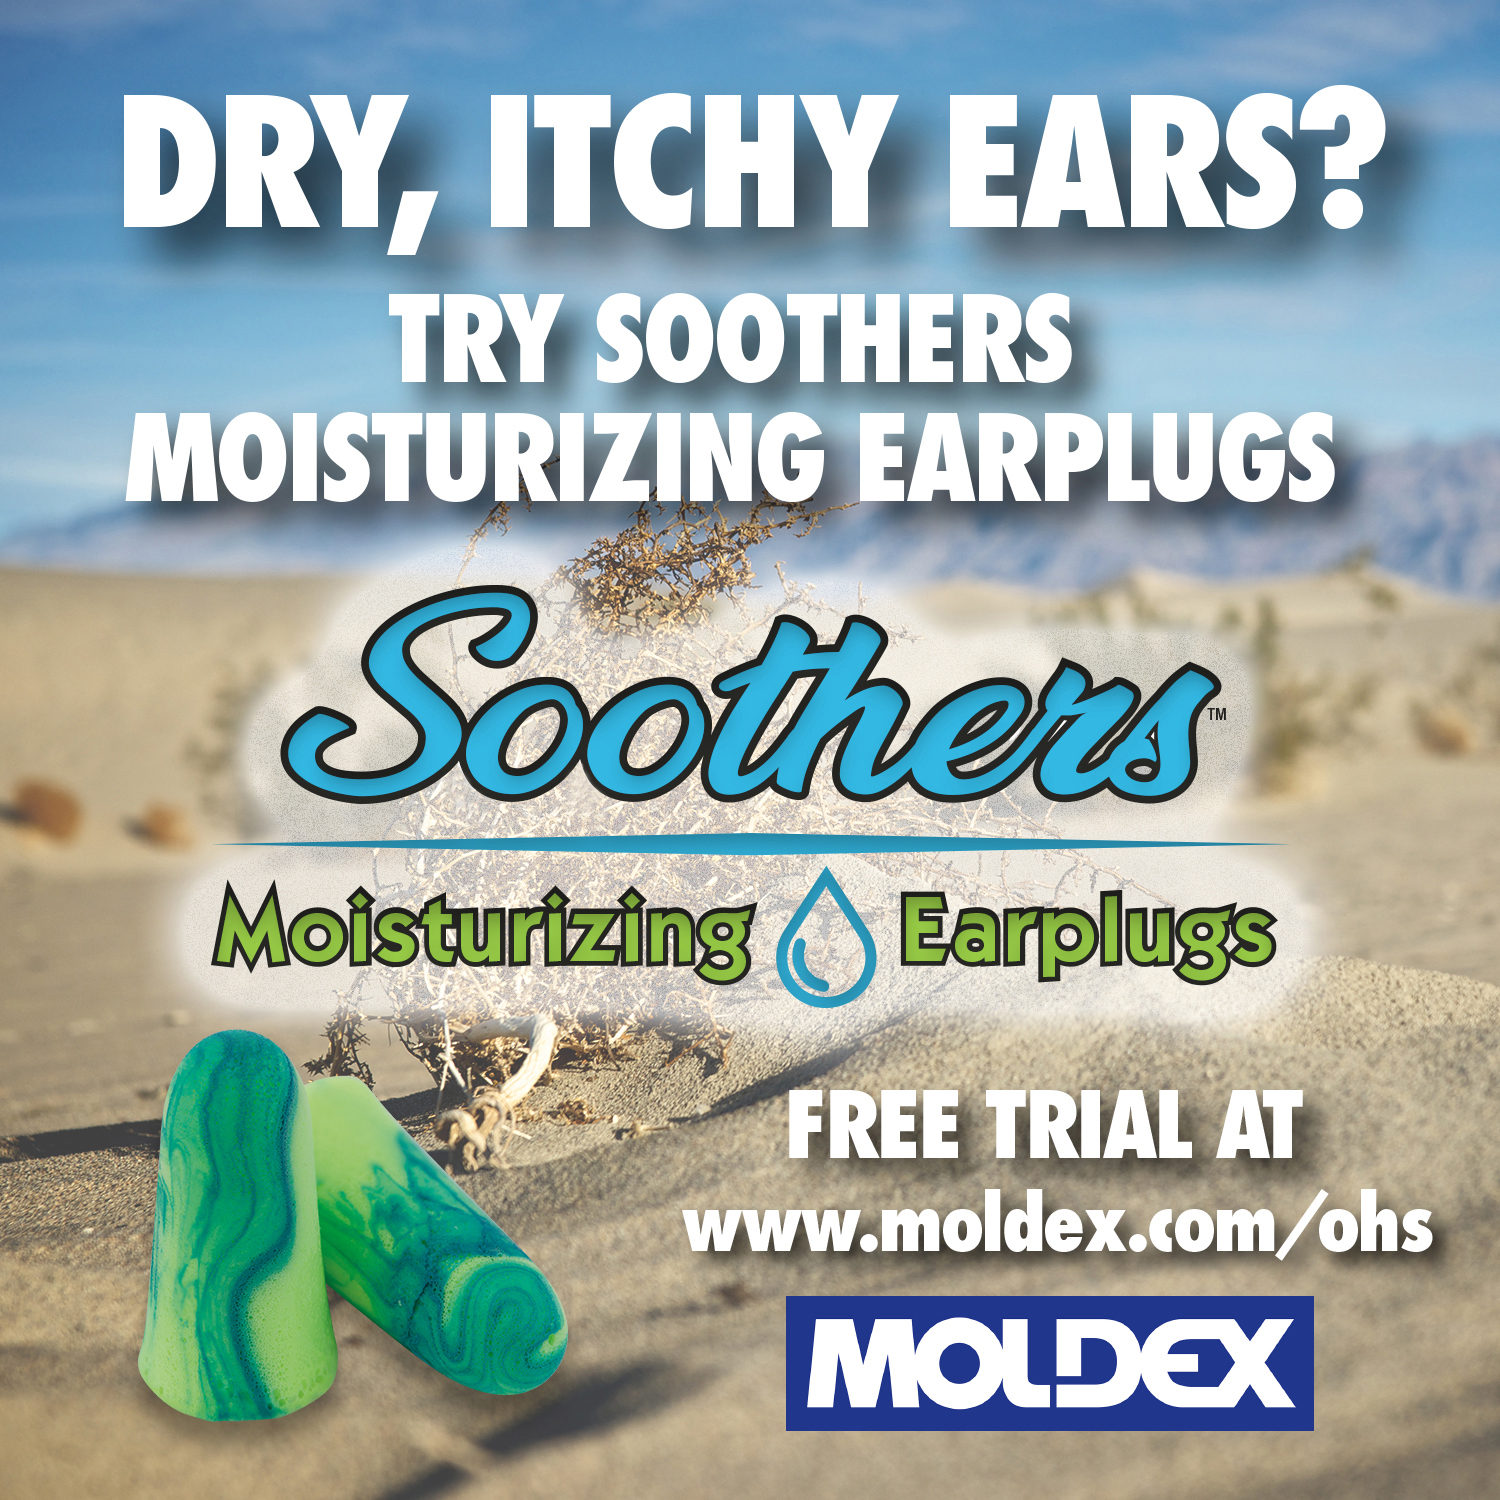 Soothers Moisturizing Earplugs